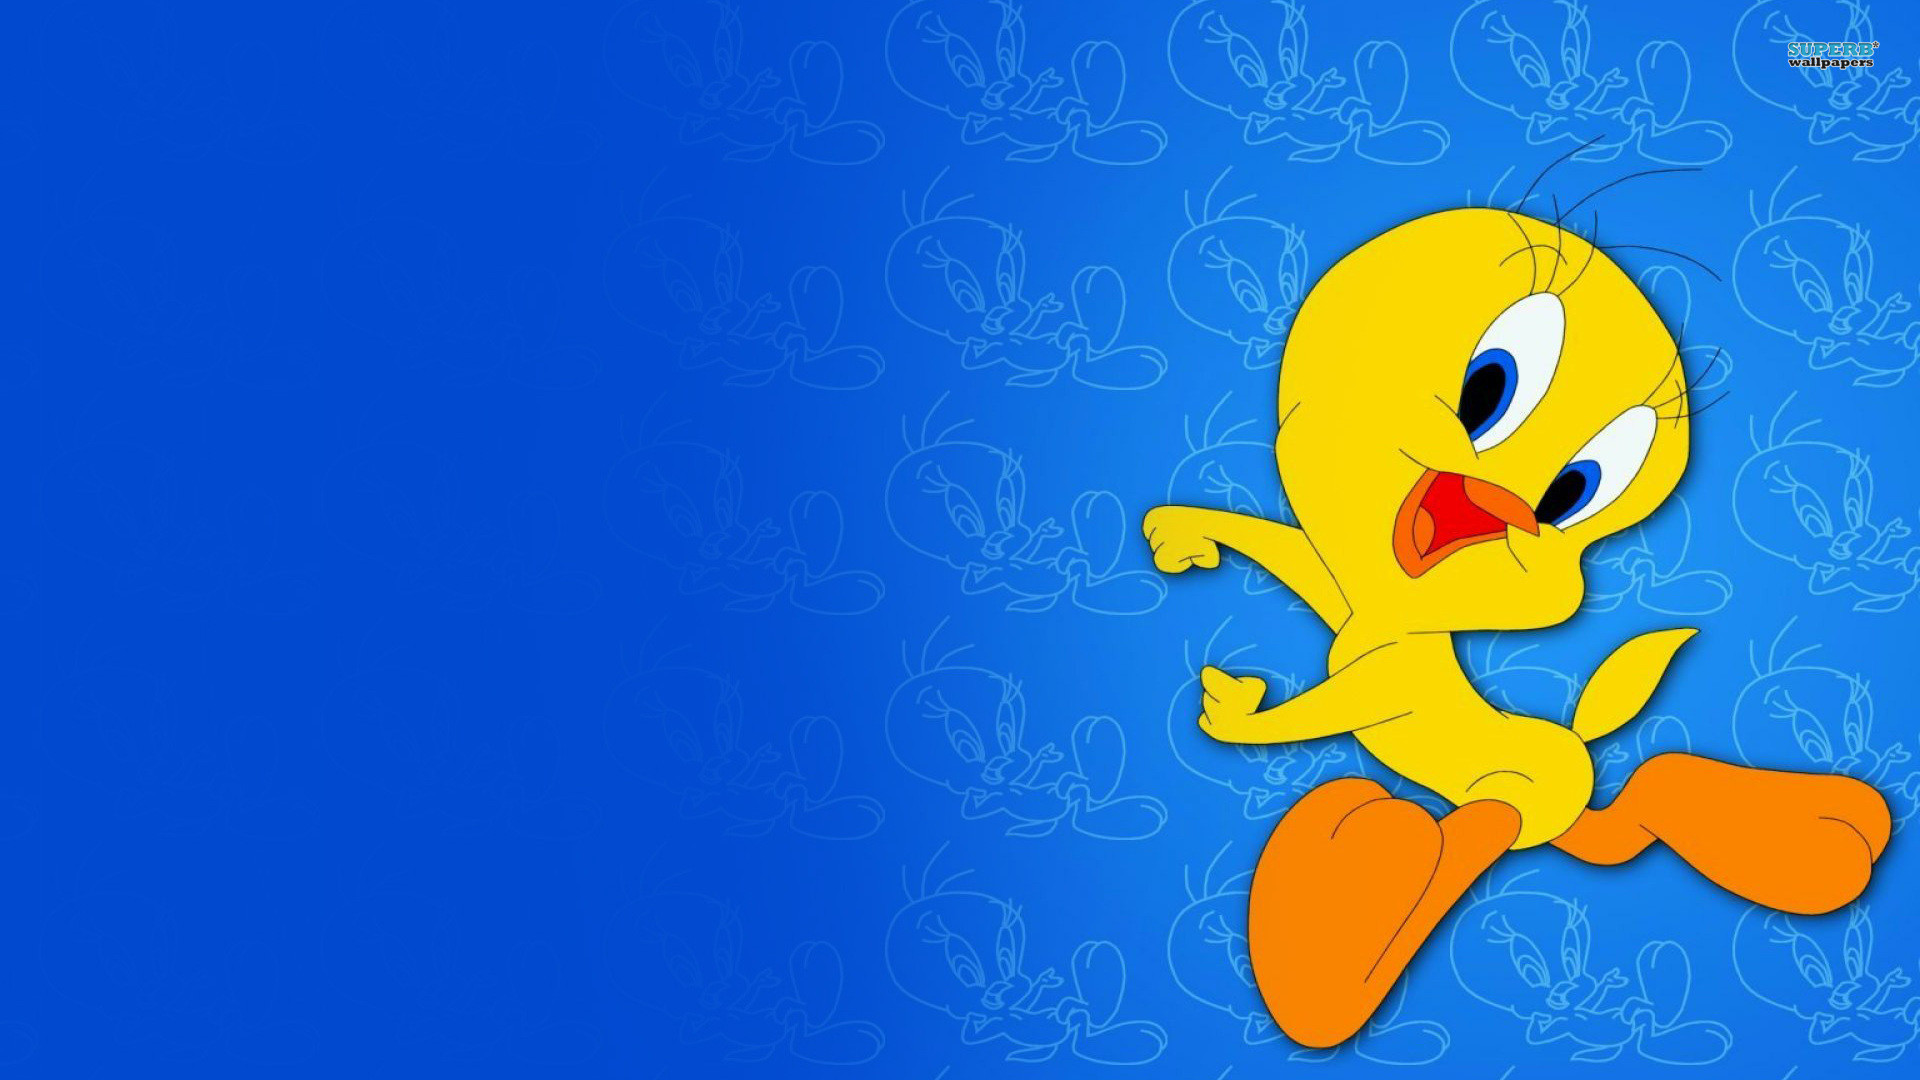 Tweety Looney Tunes Wallpaper Image for HTC One M9